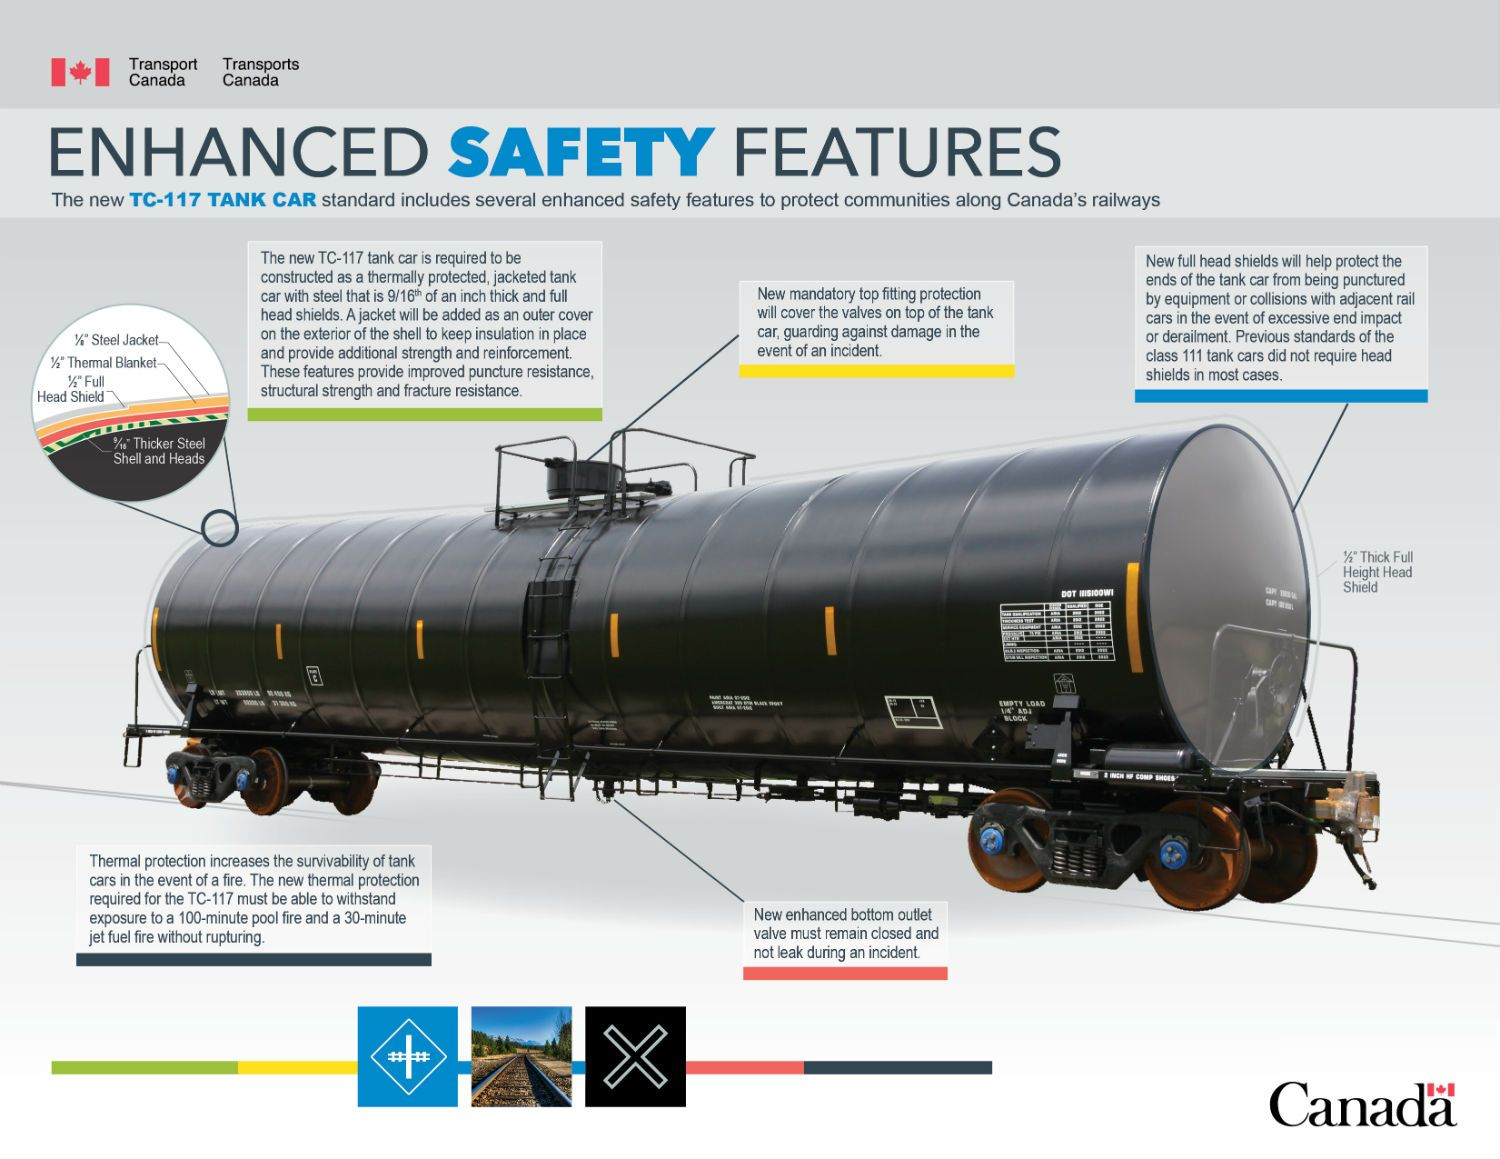 The new TC117 tank car standard includes several enhanced